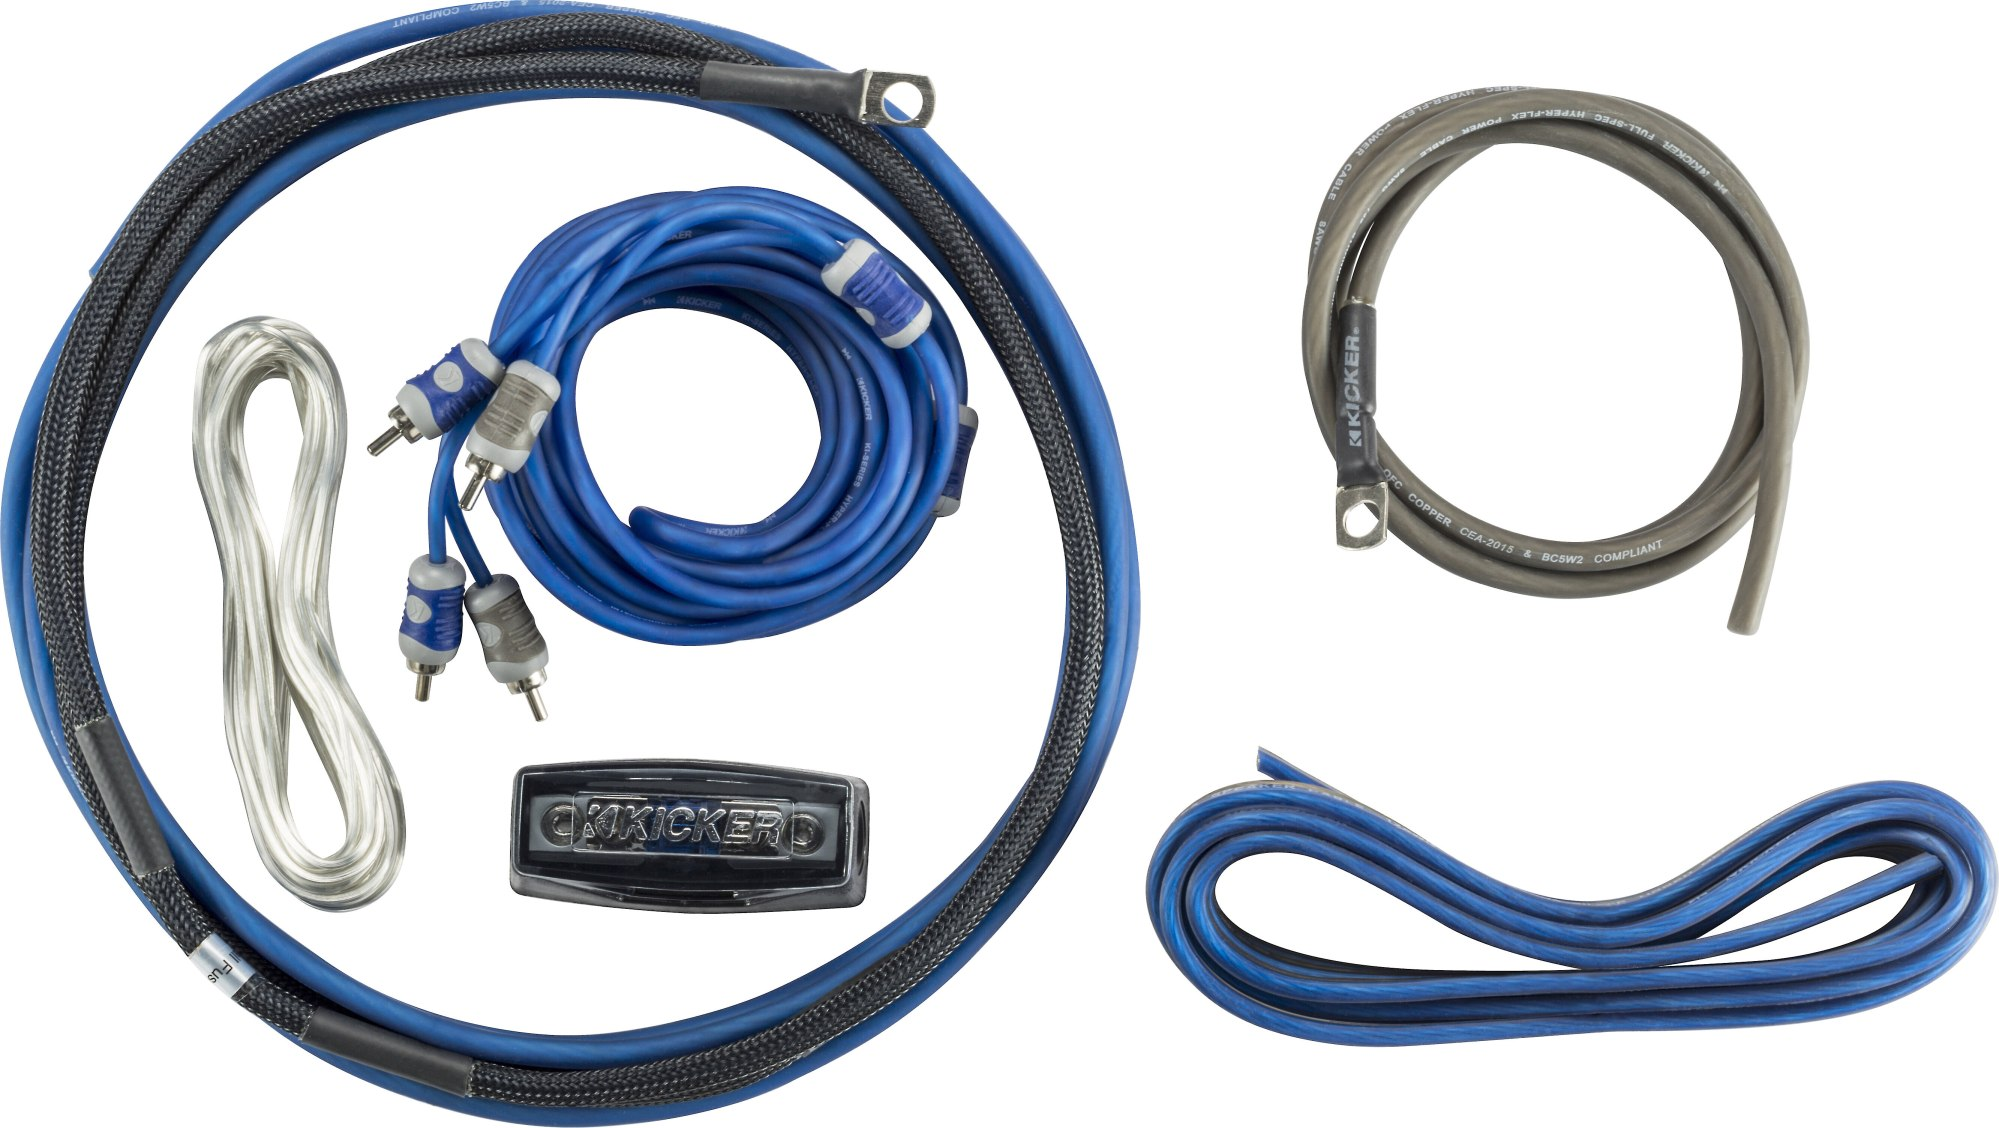 hight resolution of kicker 46ck8 complete 8 gauge amplifier wiring kit includes 2 channel patch cable and speaker wire at crutchfield com